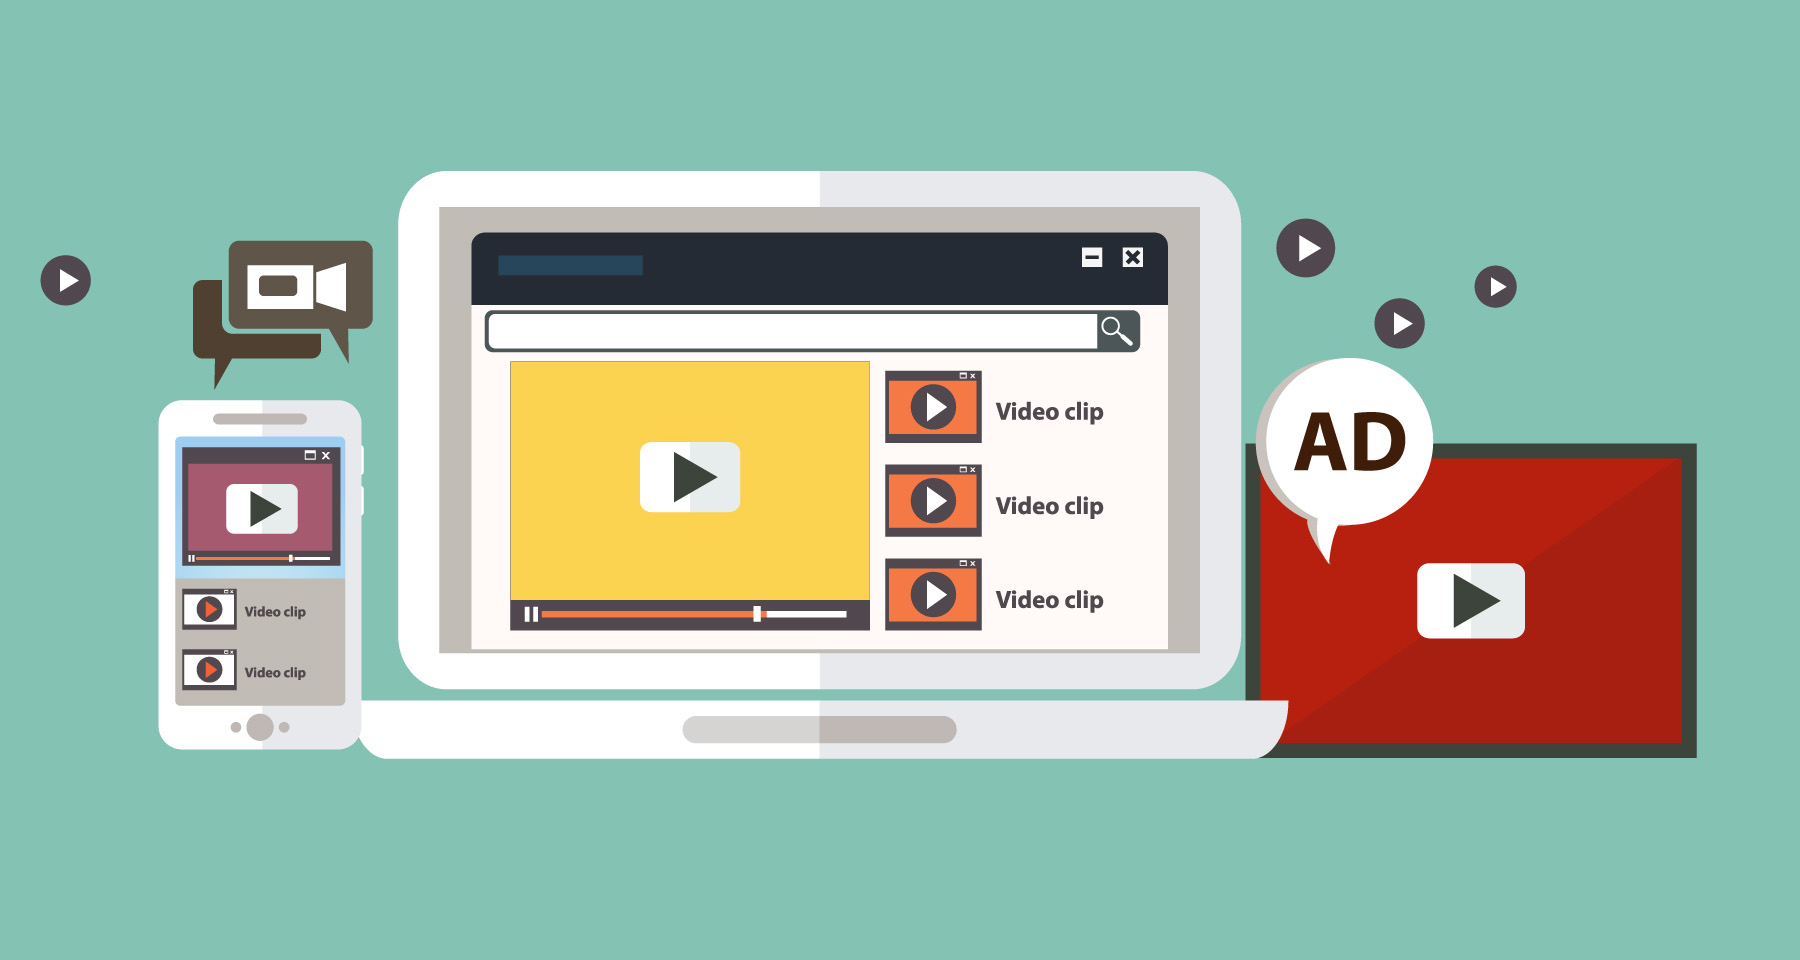 Video content at scale is game changer for publishers